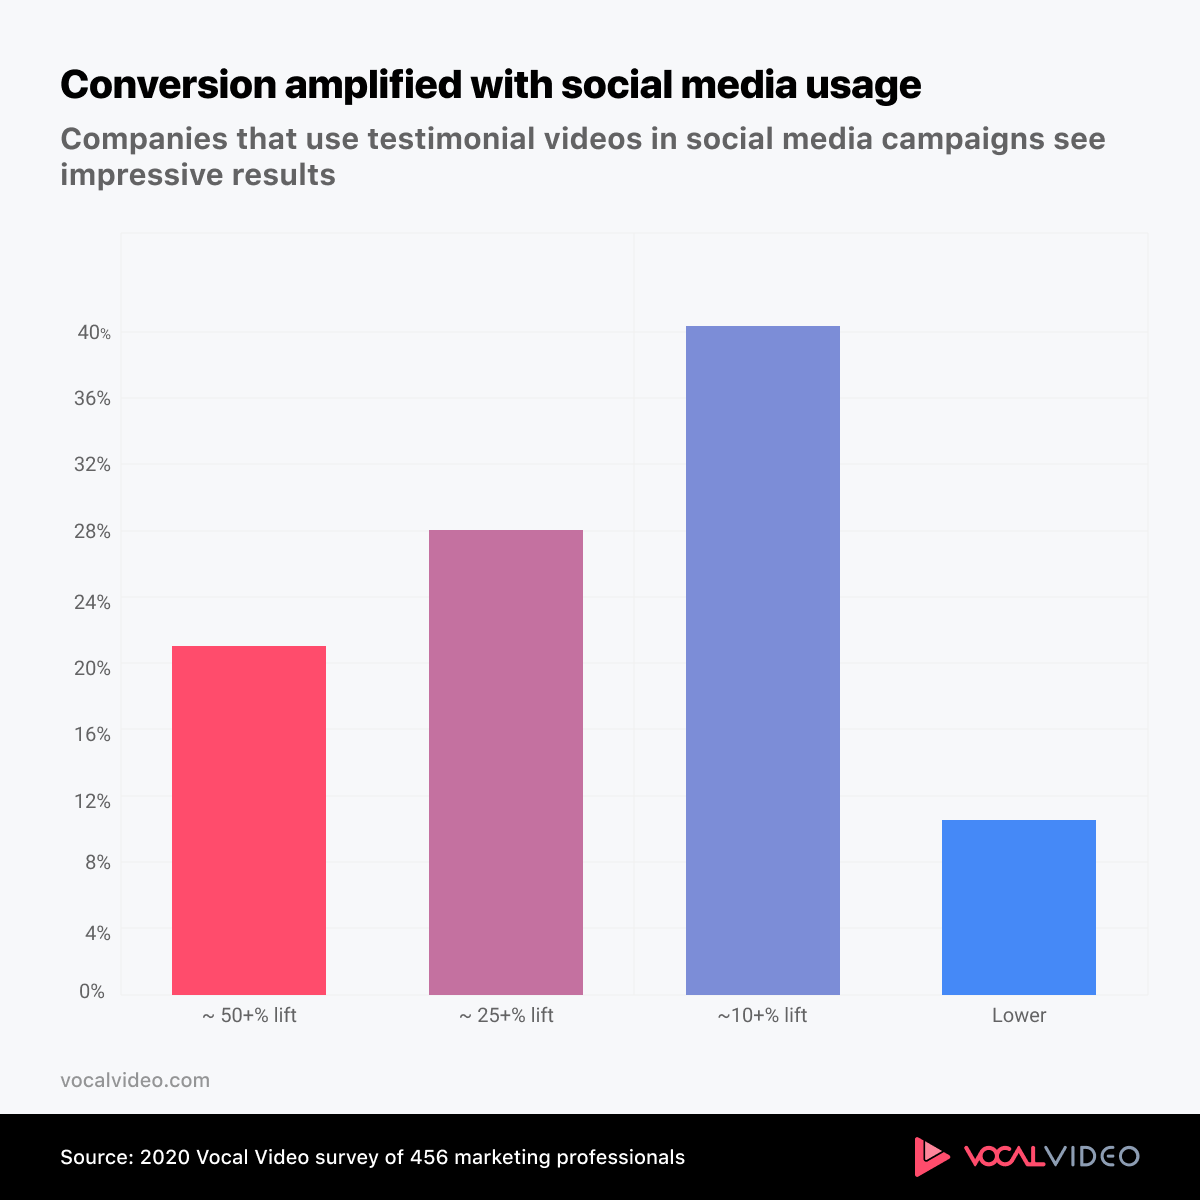 Chart showing that social media usage of testimonial videos amplifies conversion.